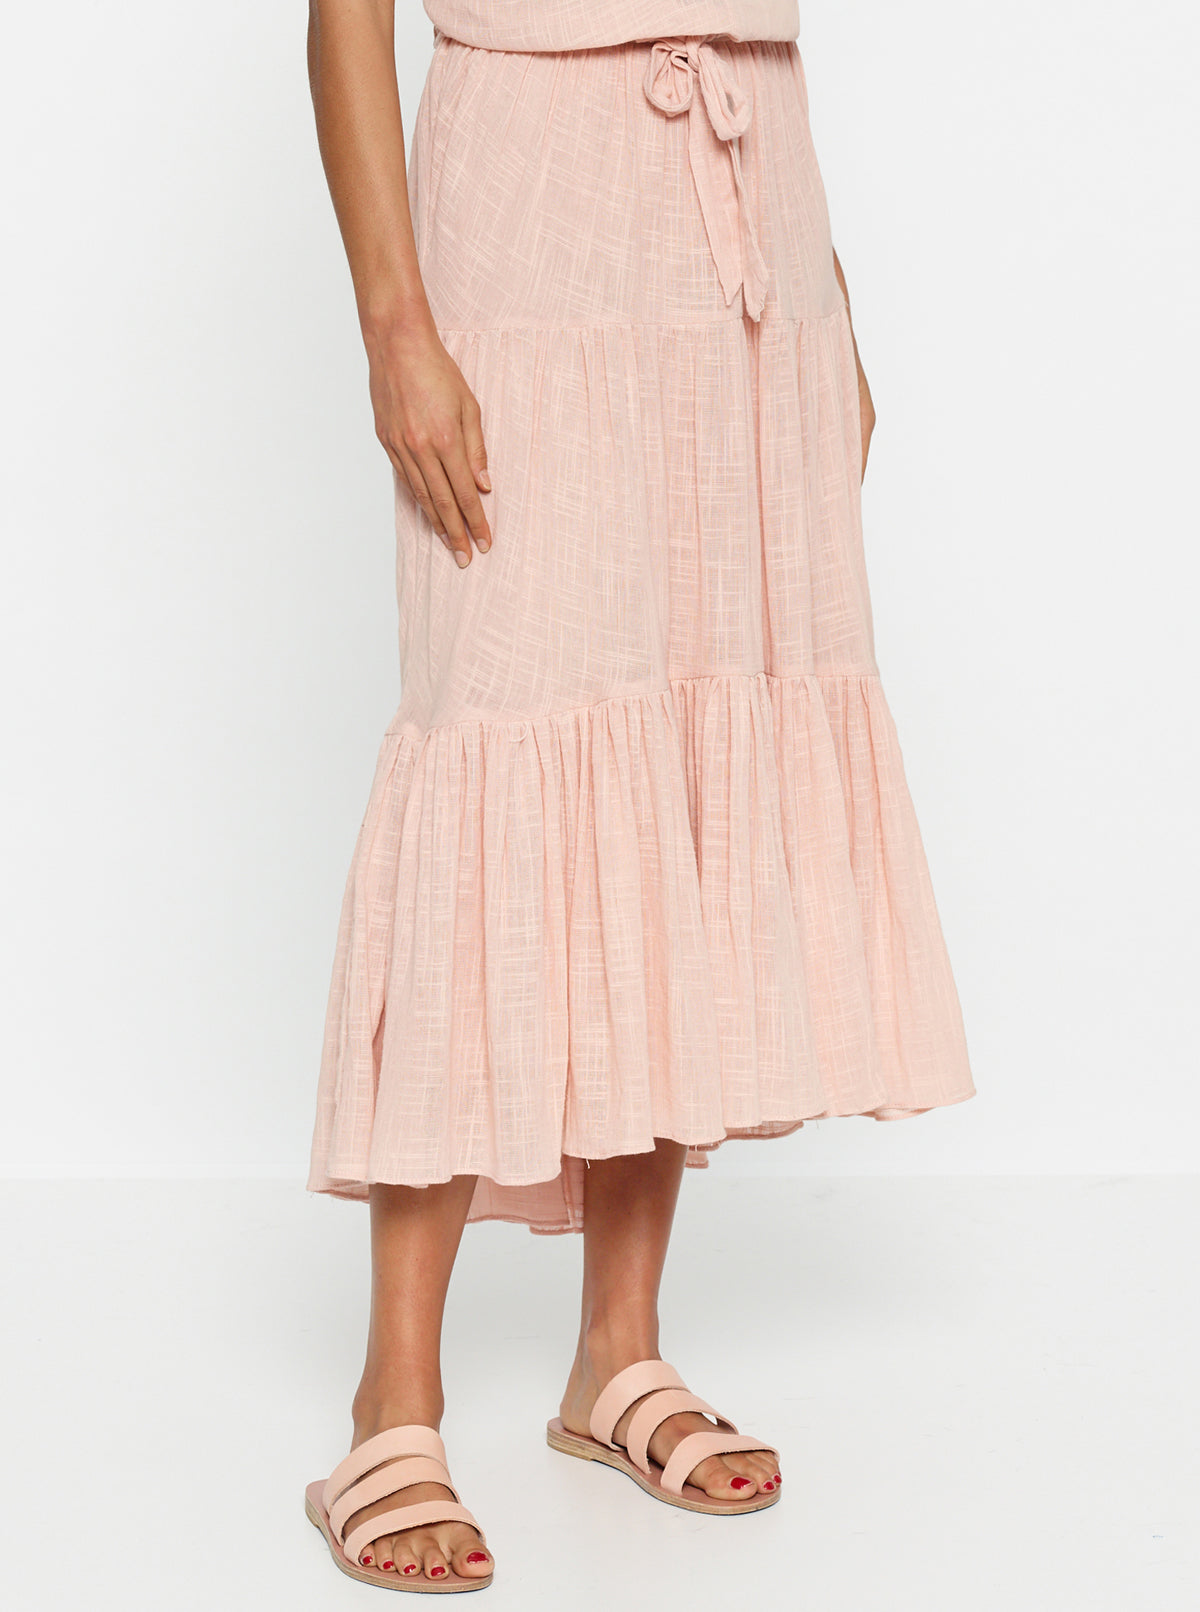 Bahamas Gathered Midi Skirt